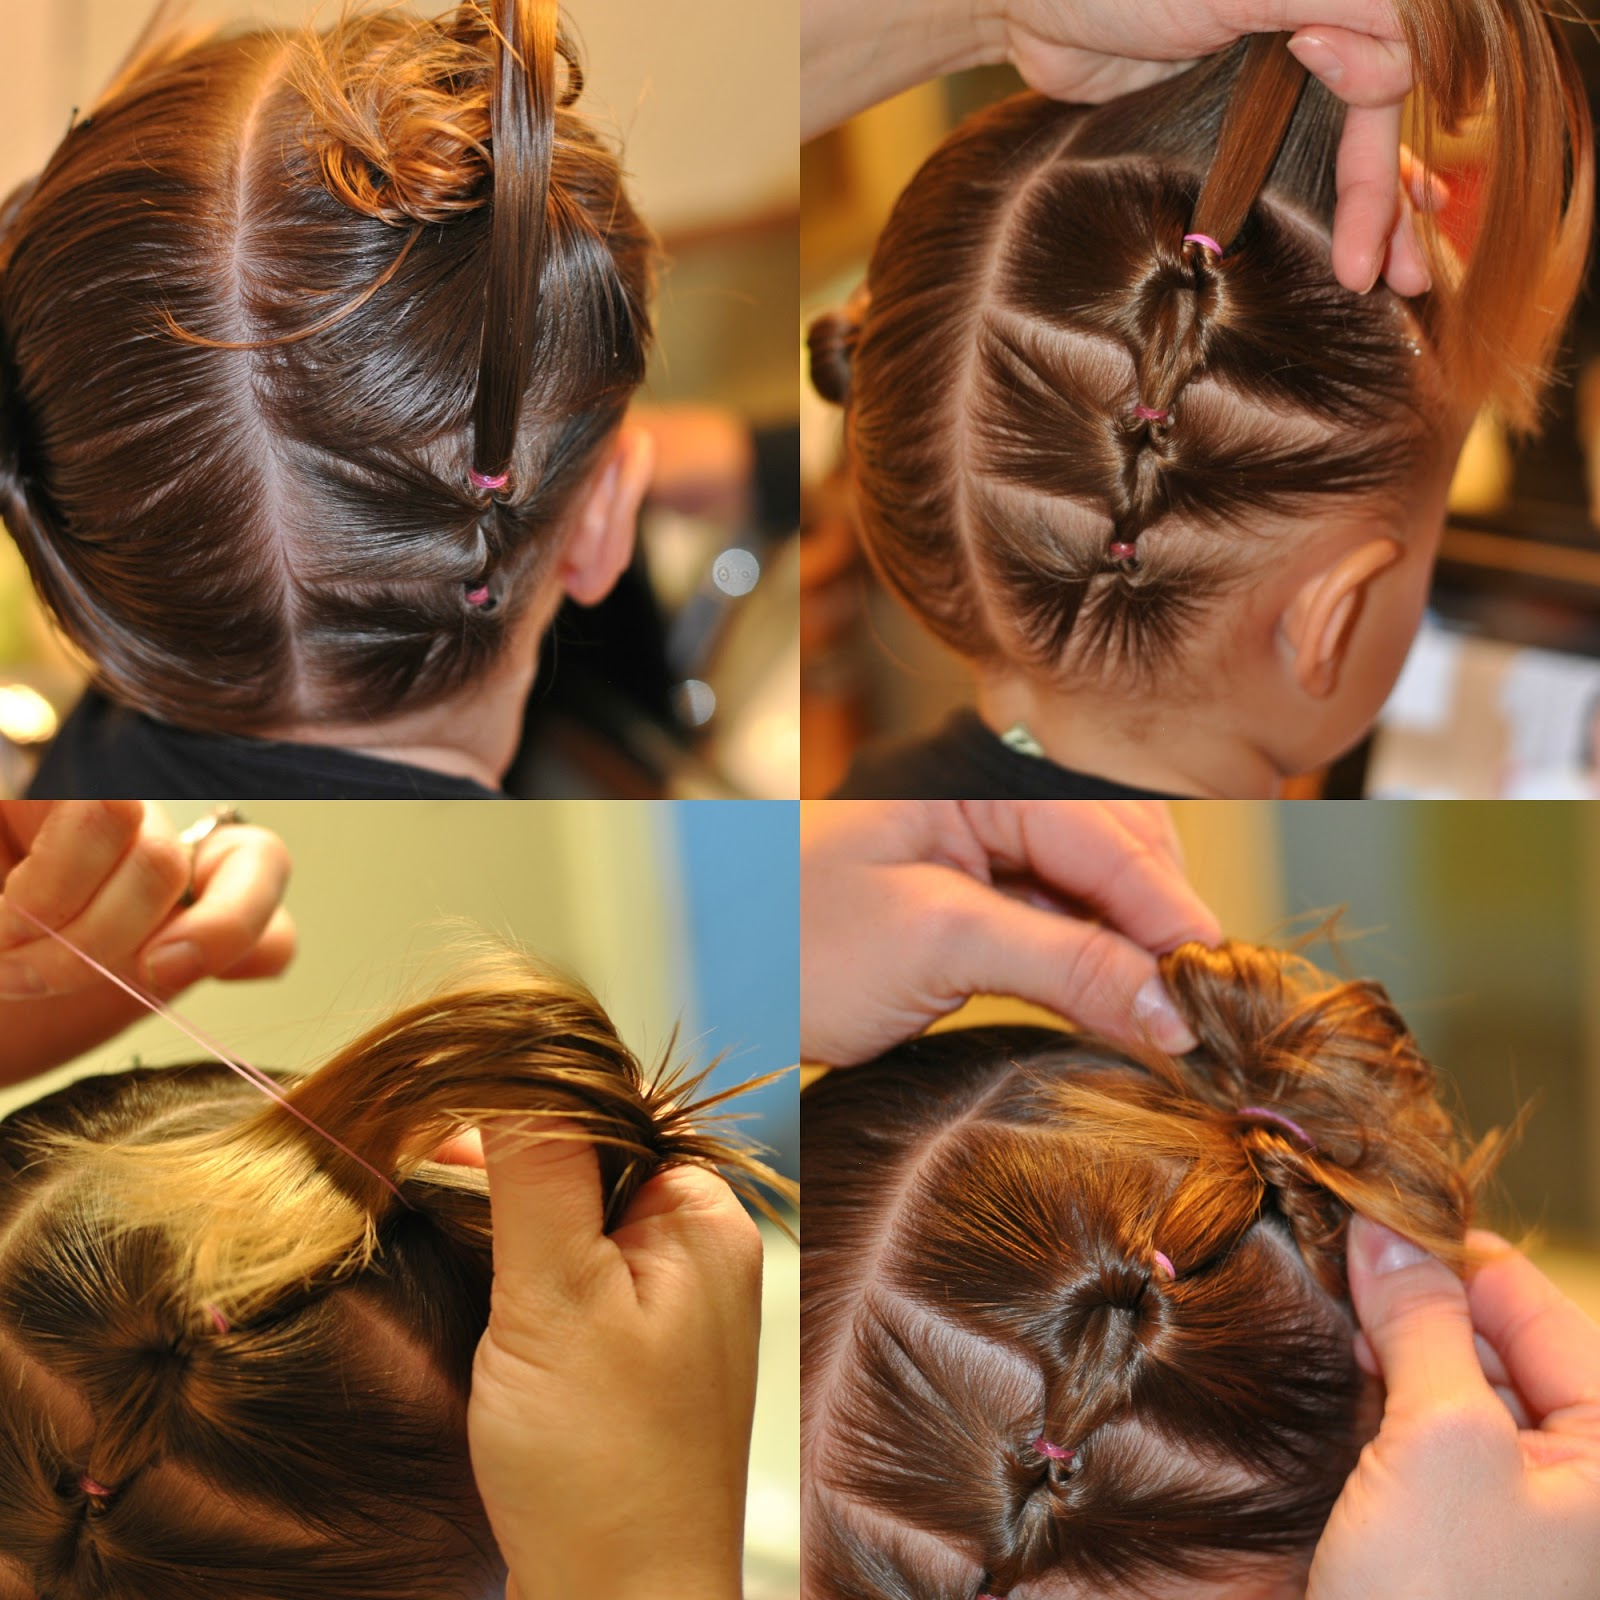 How To Backward Twist Pigtails